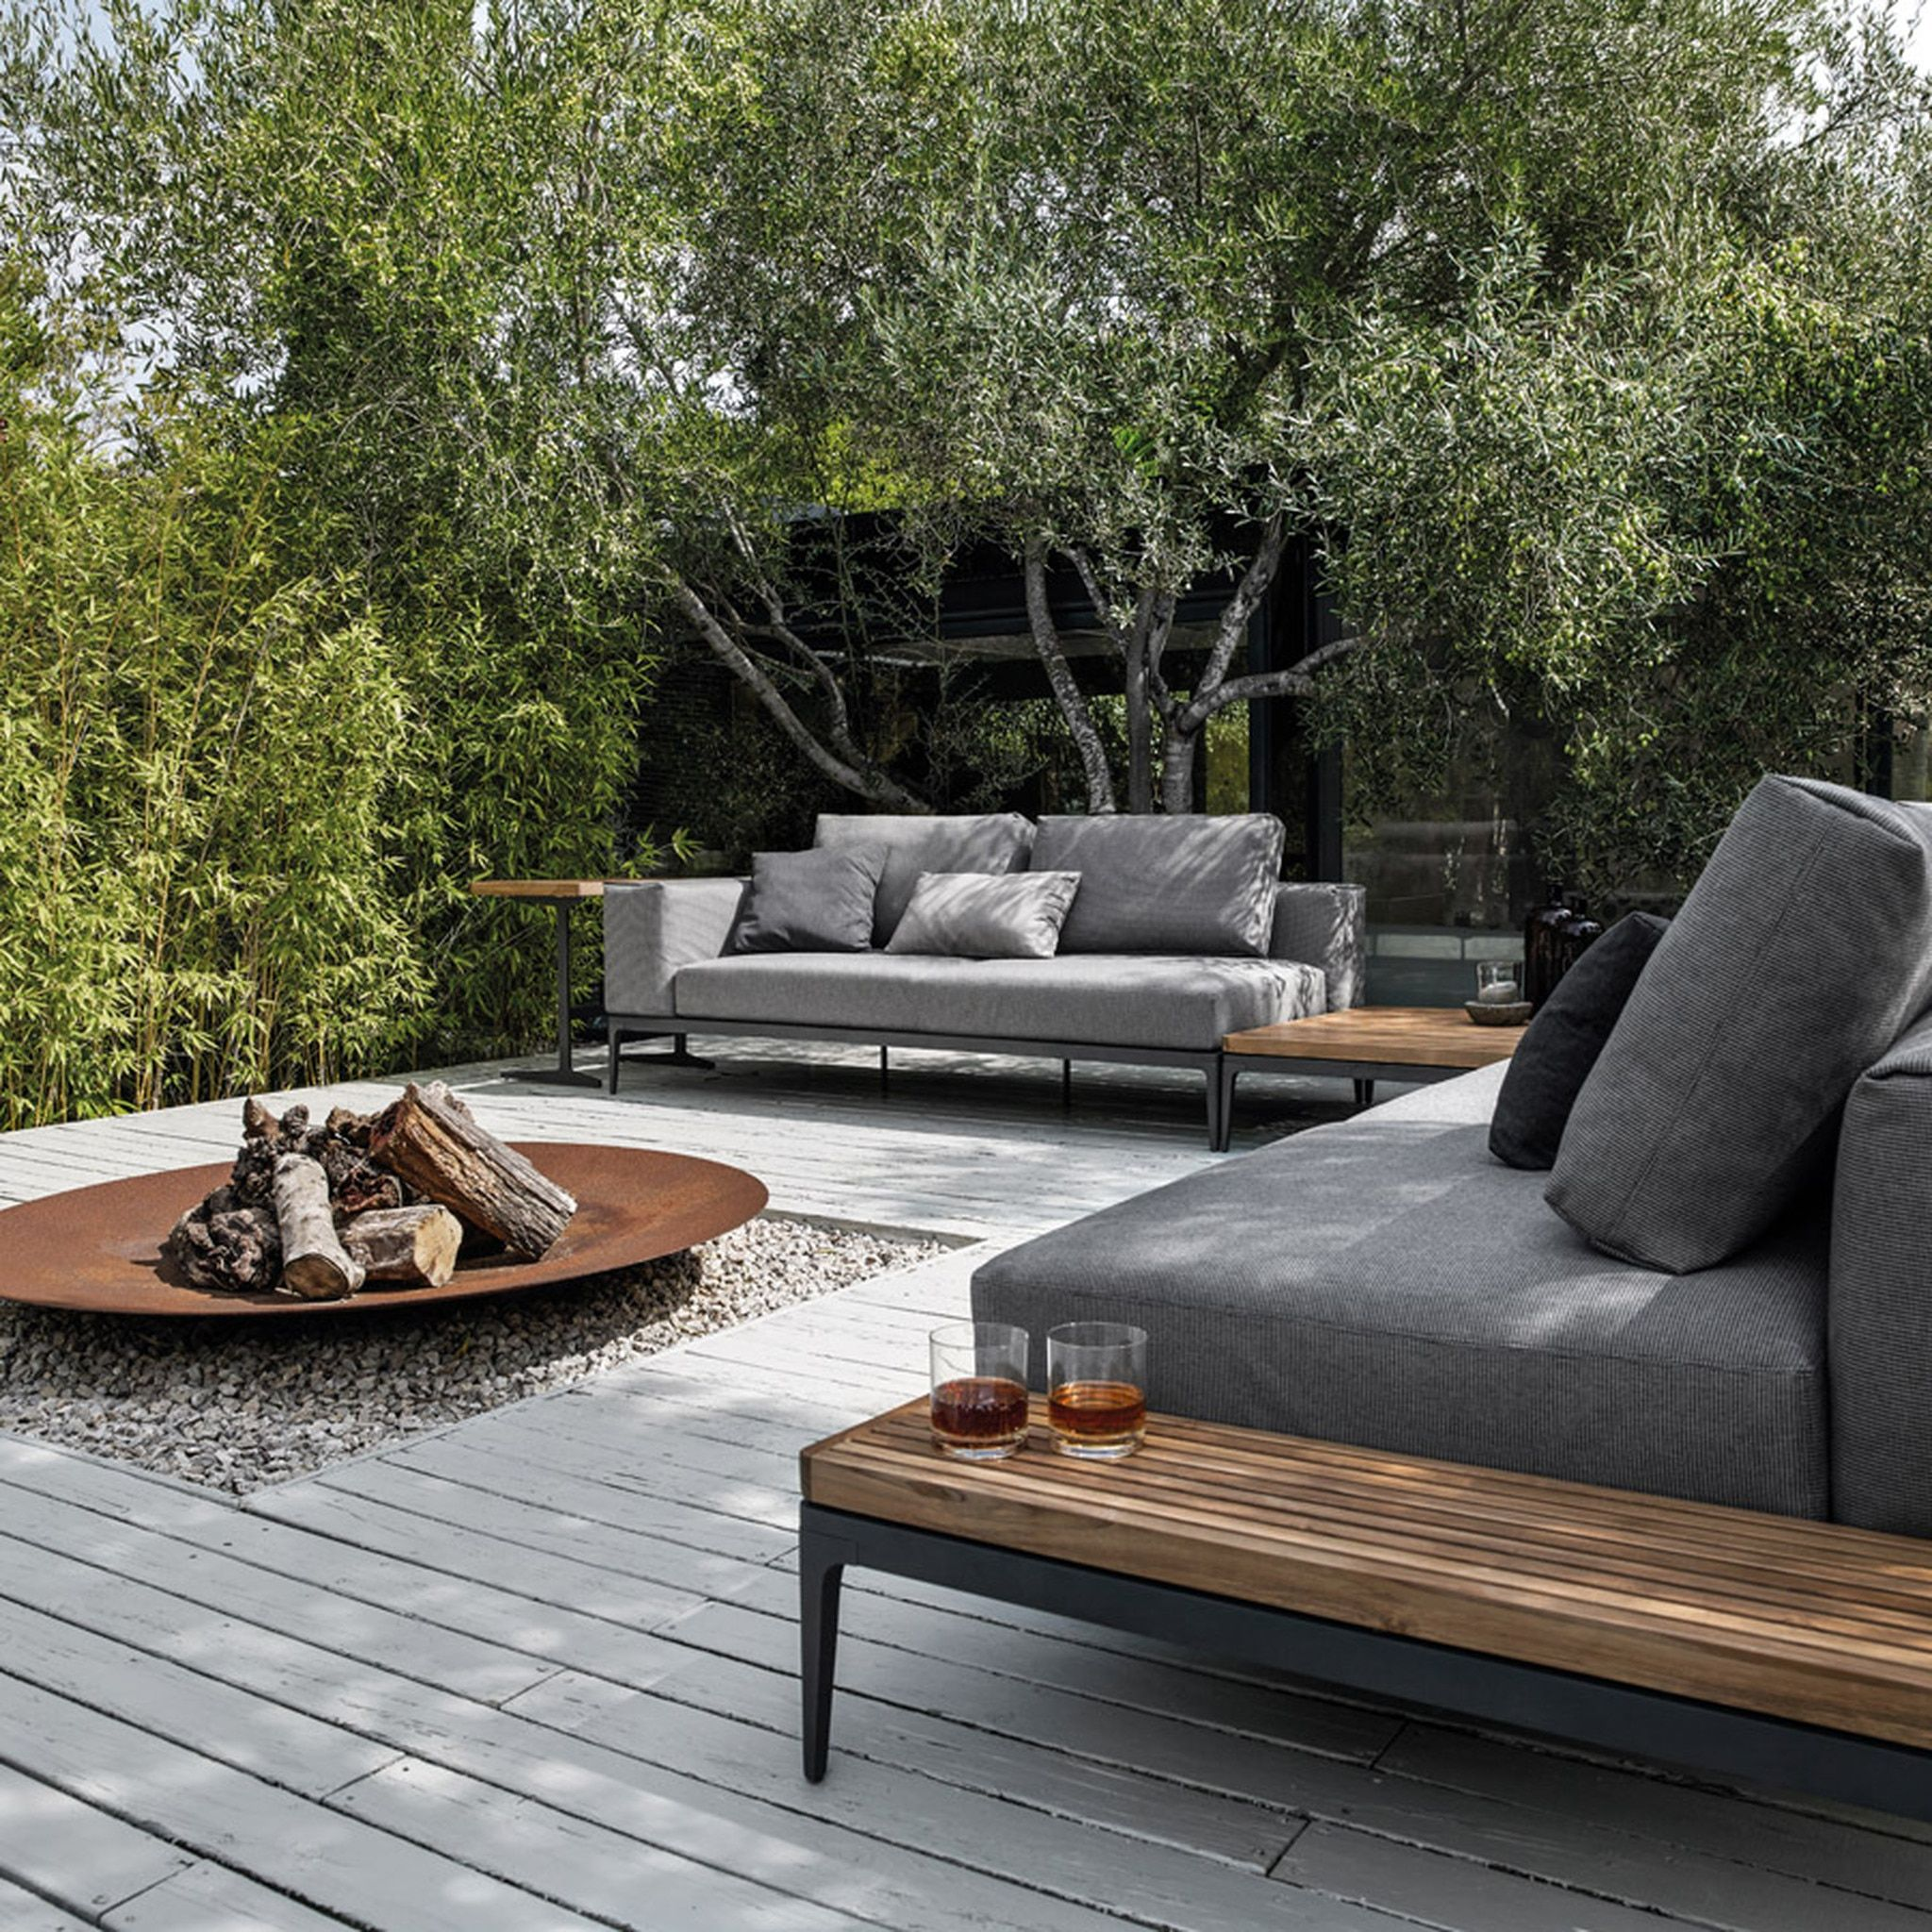 Gloster Grid Left Chaise Unit Authenteak In 2021 Outdoor Fire Pit Patio Outdoor Patio Furniture Outdoor Decor